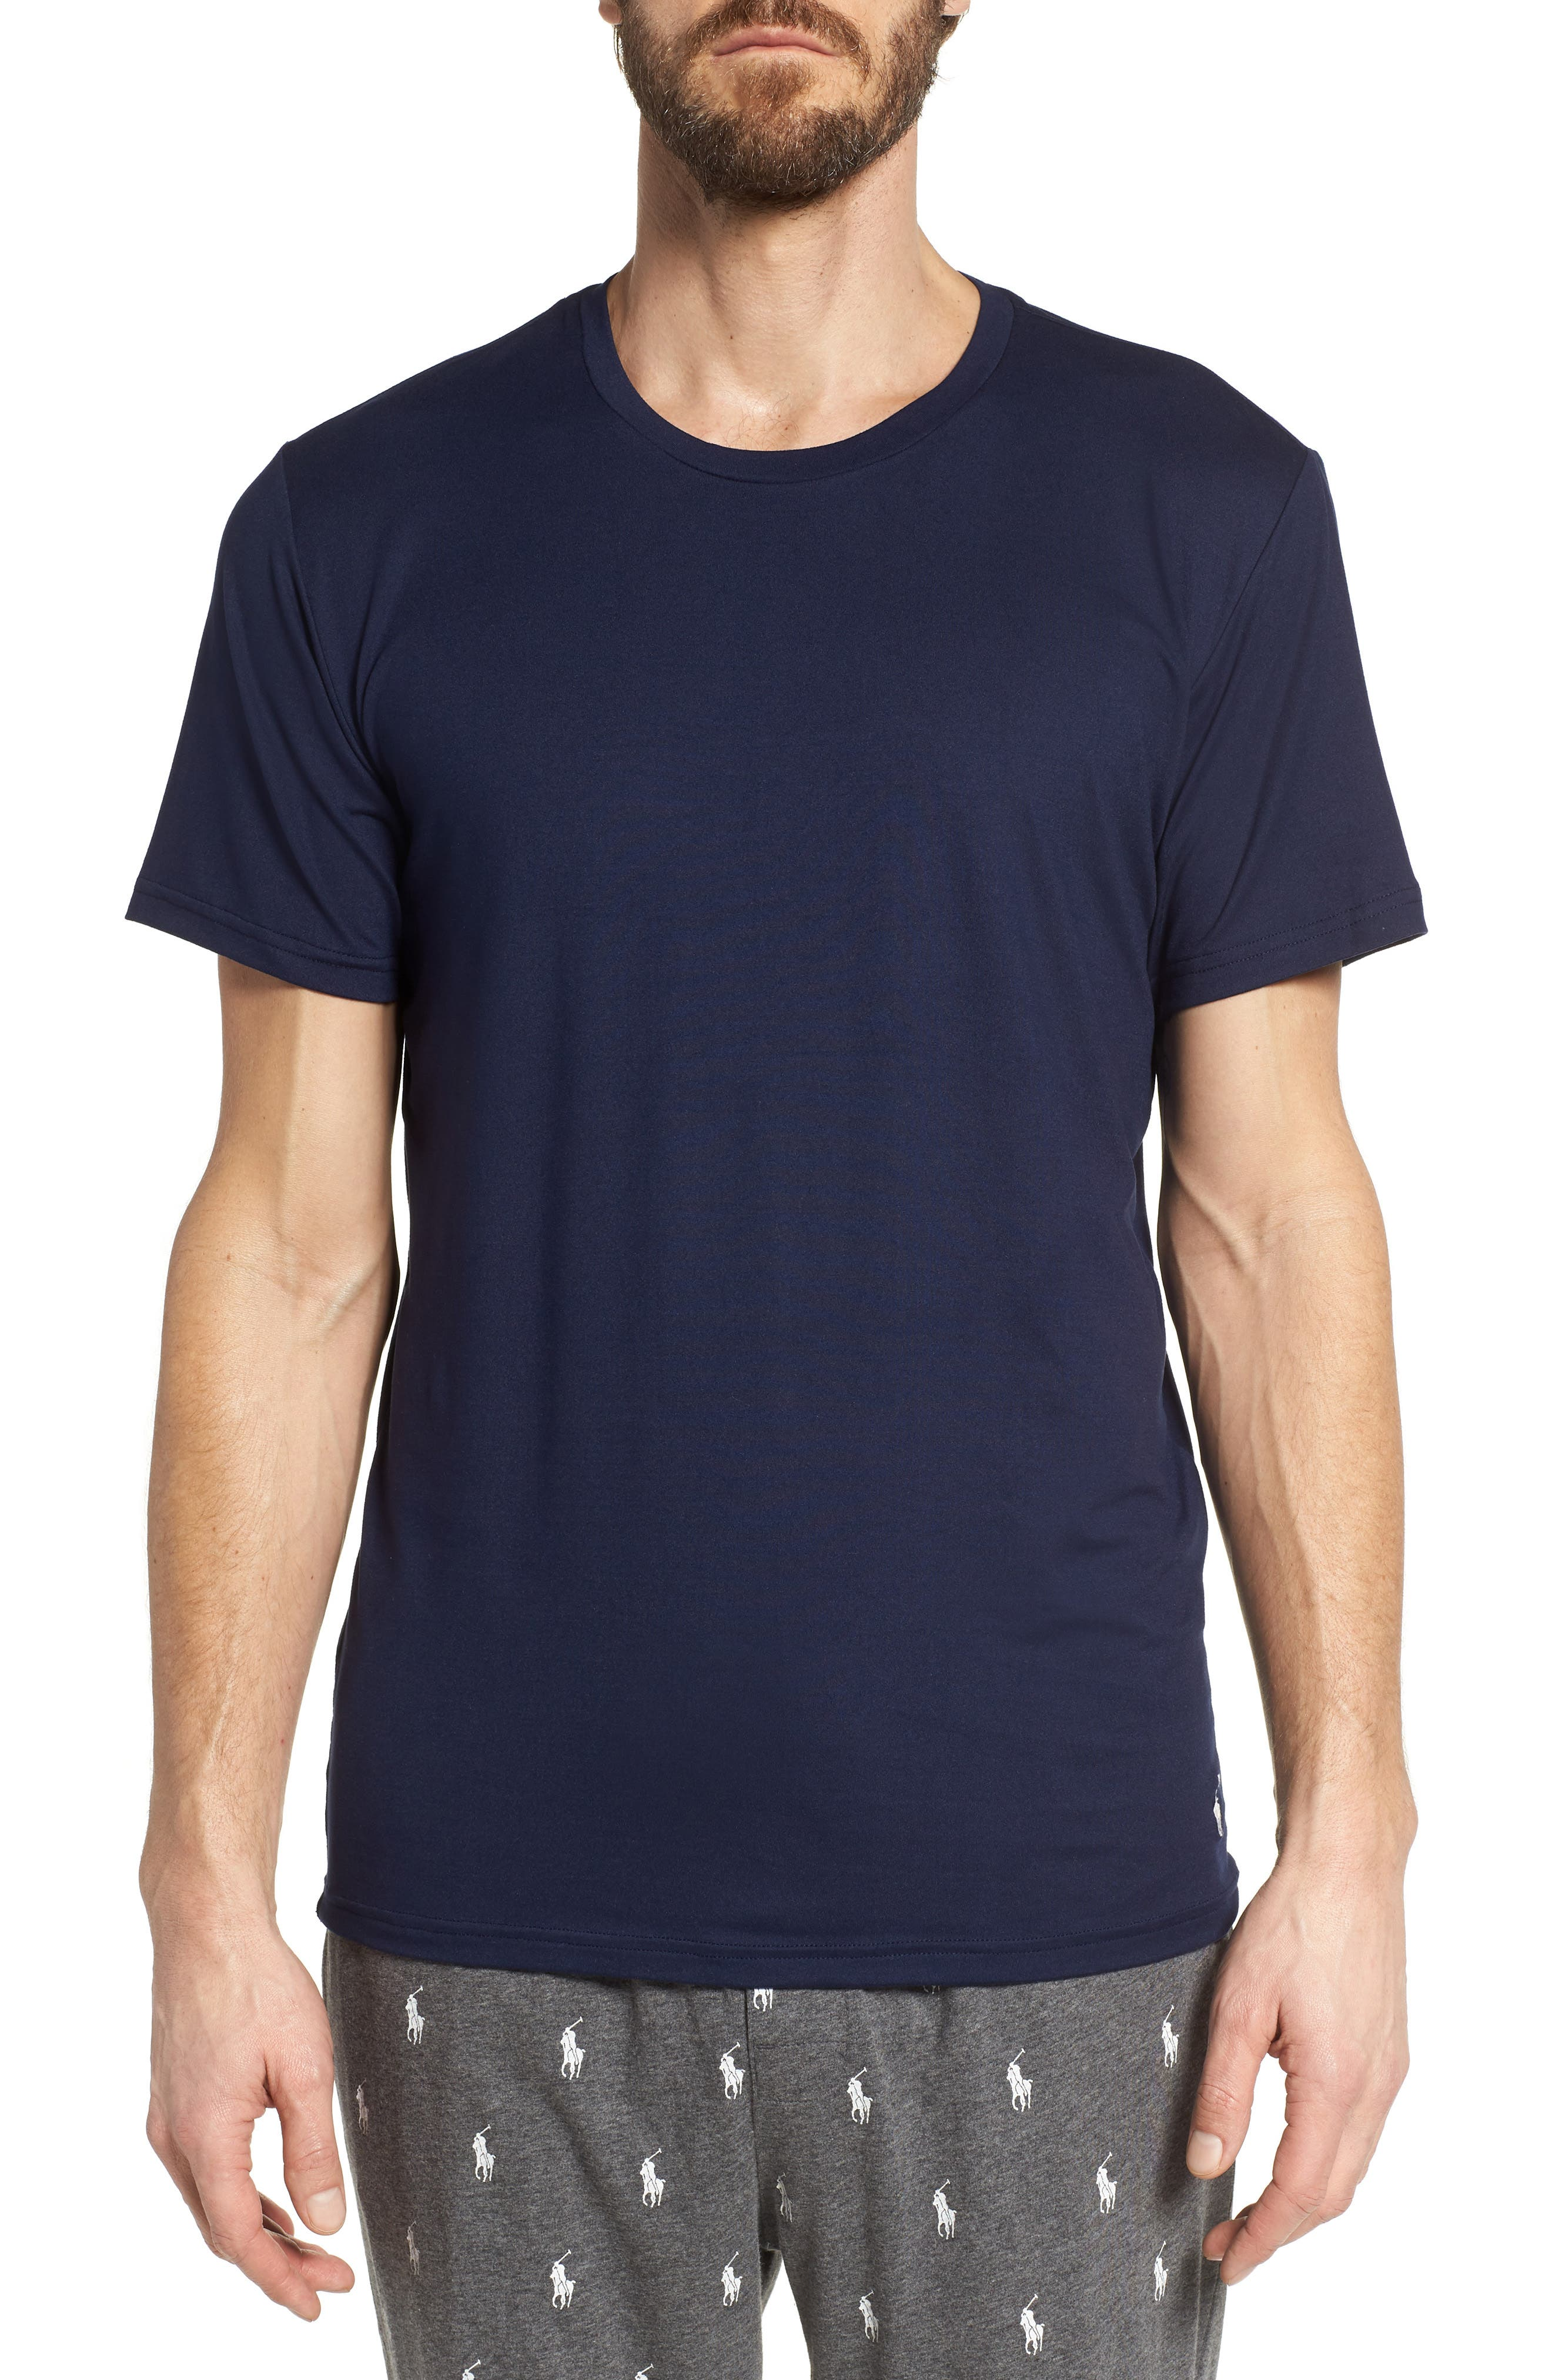 Polo Ralph Lauren Therma Sleep Crewneck T-Shirt